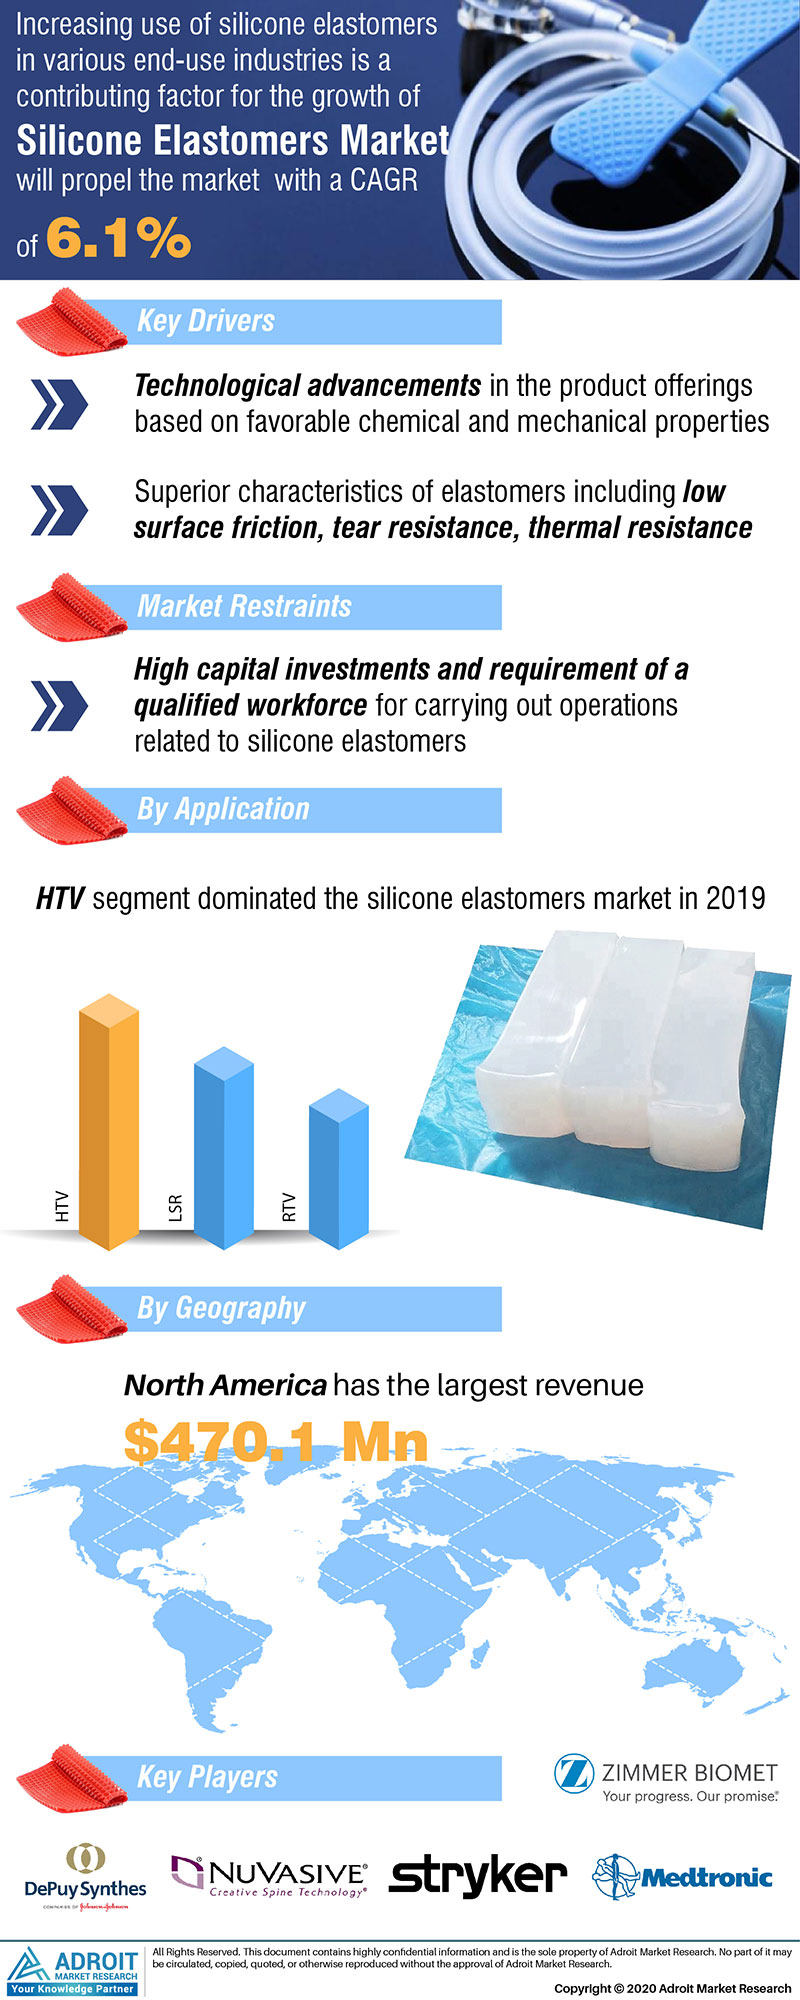 Silicone Elastomers Market Size to reach $2.01 billion by 2025